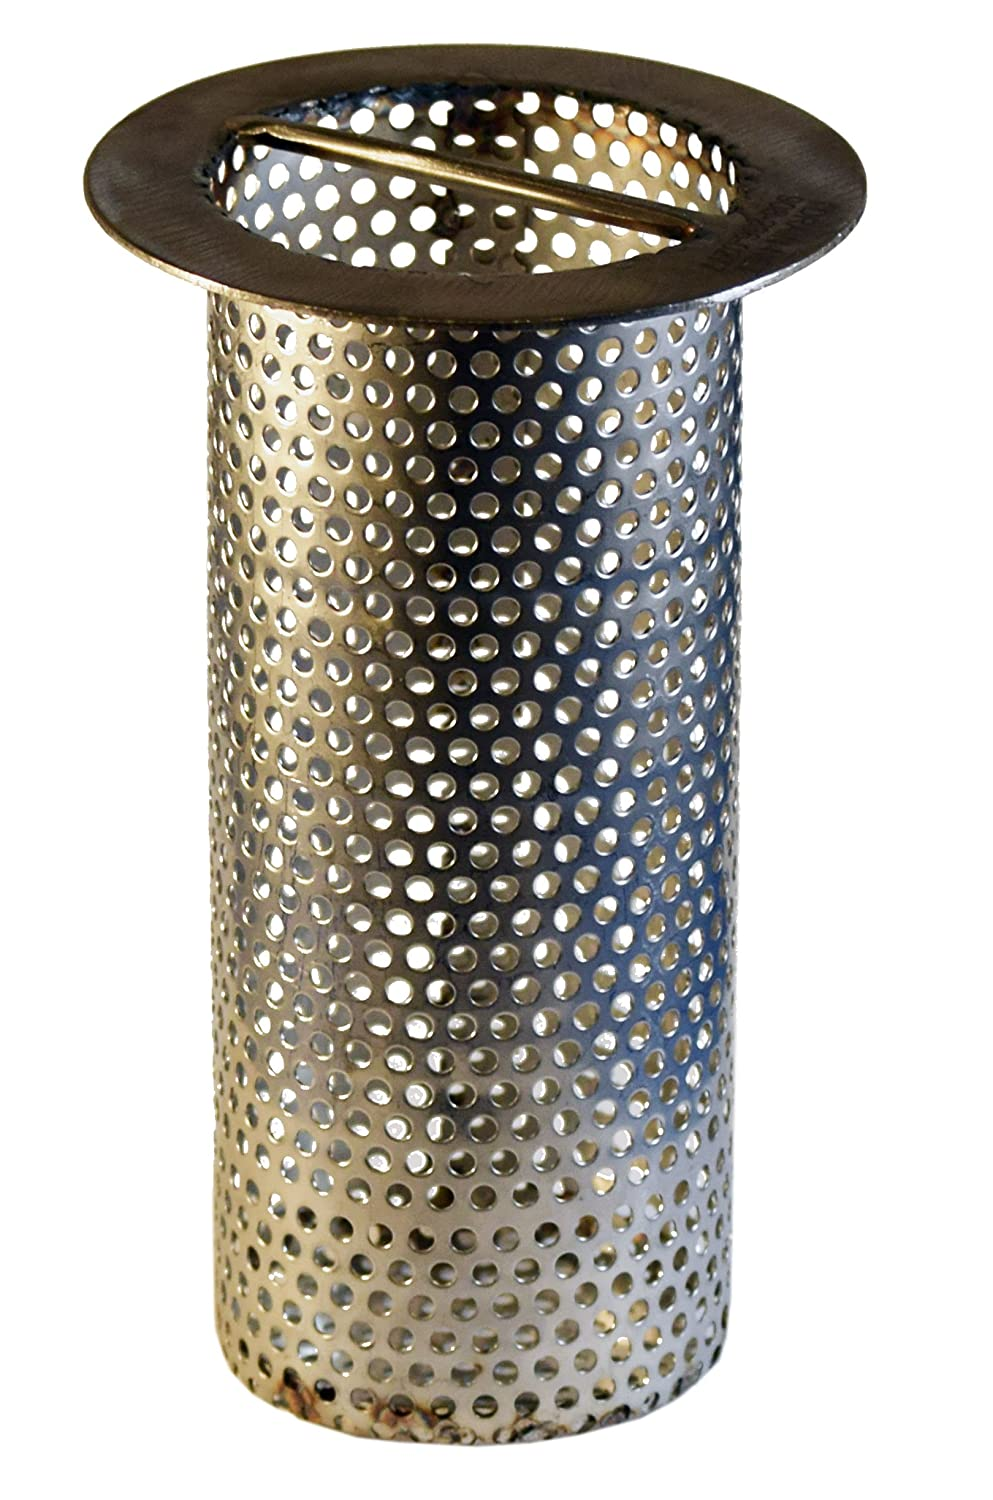 3 Commercial Floor Drain Strainer 4 tall Perforated Stainless Steel